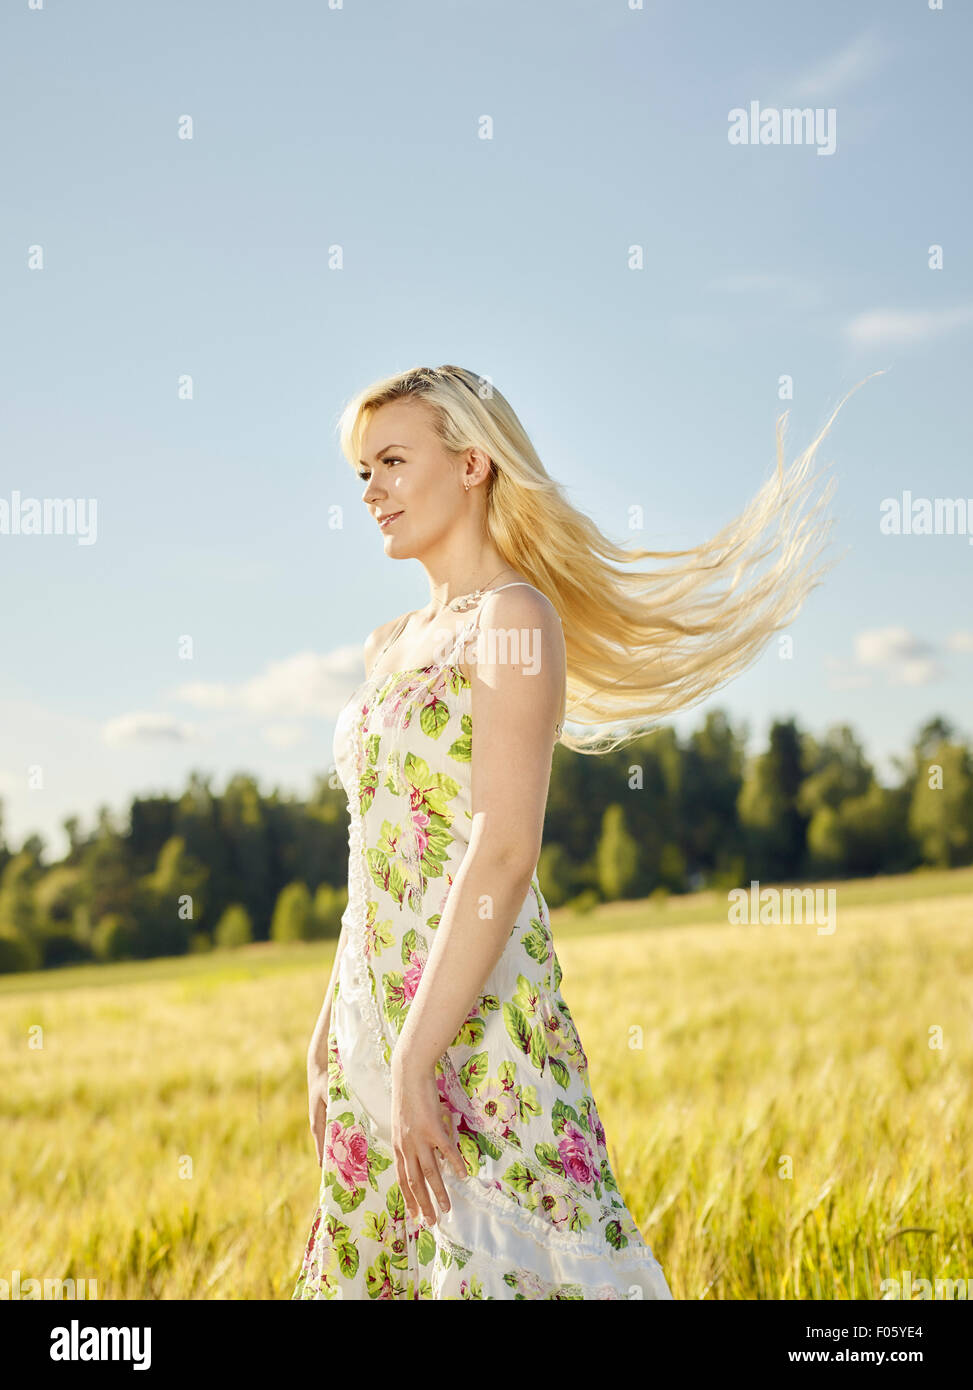 Beautiful fair skin blonde wearing a floral dress, summer sunlight, barley field on background - Stock Image